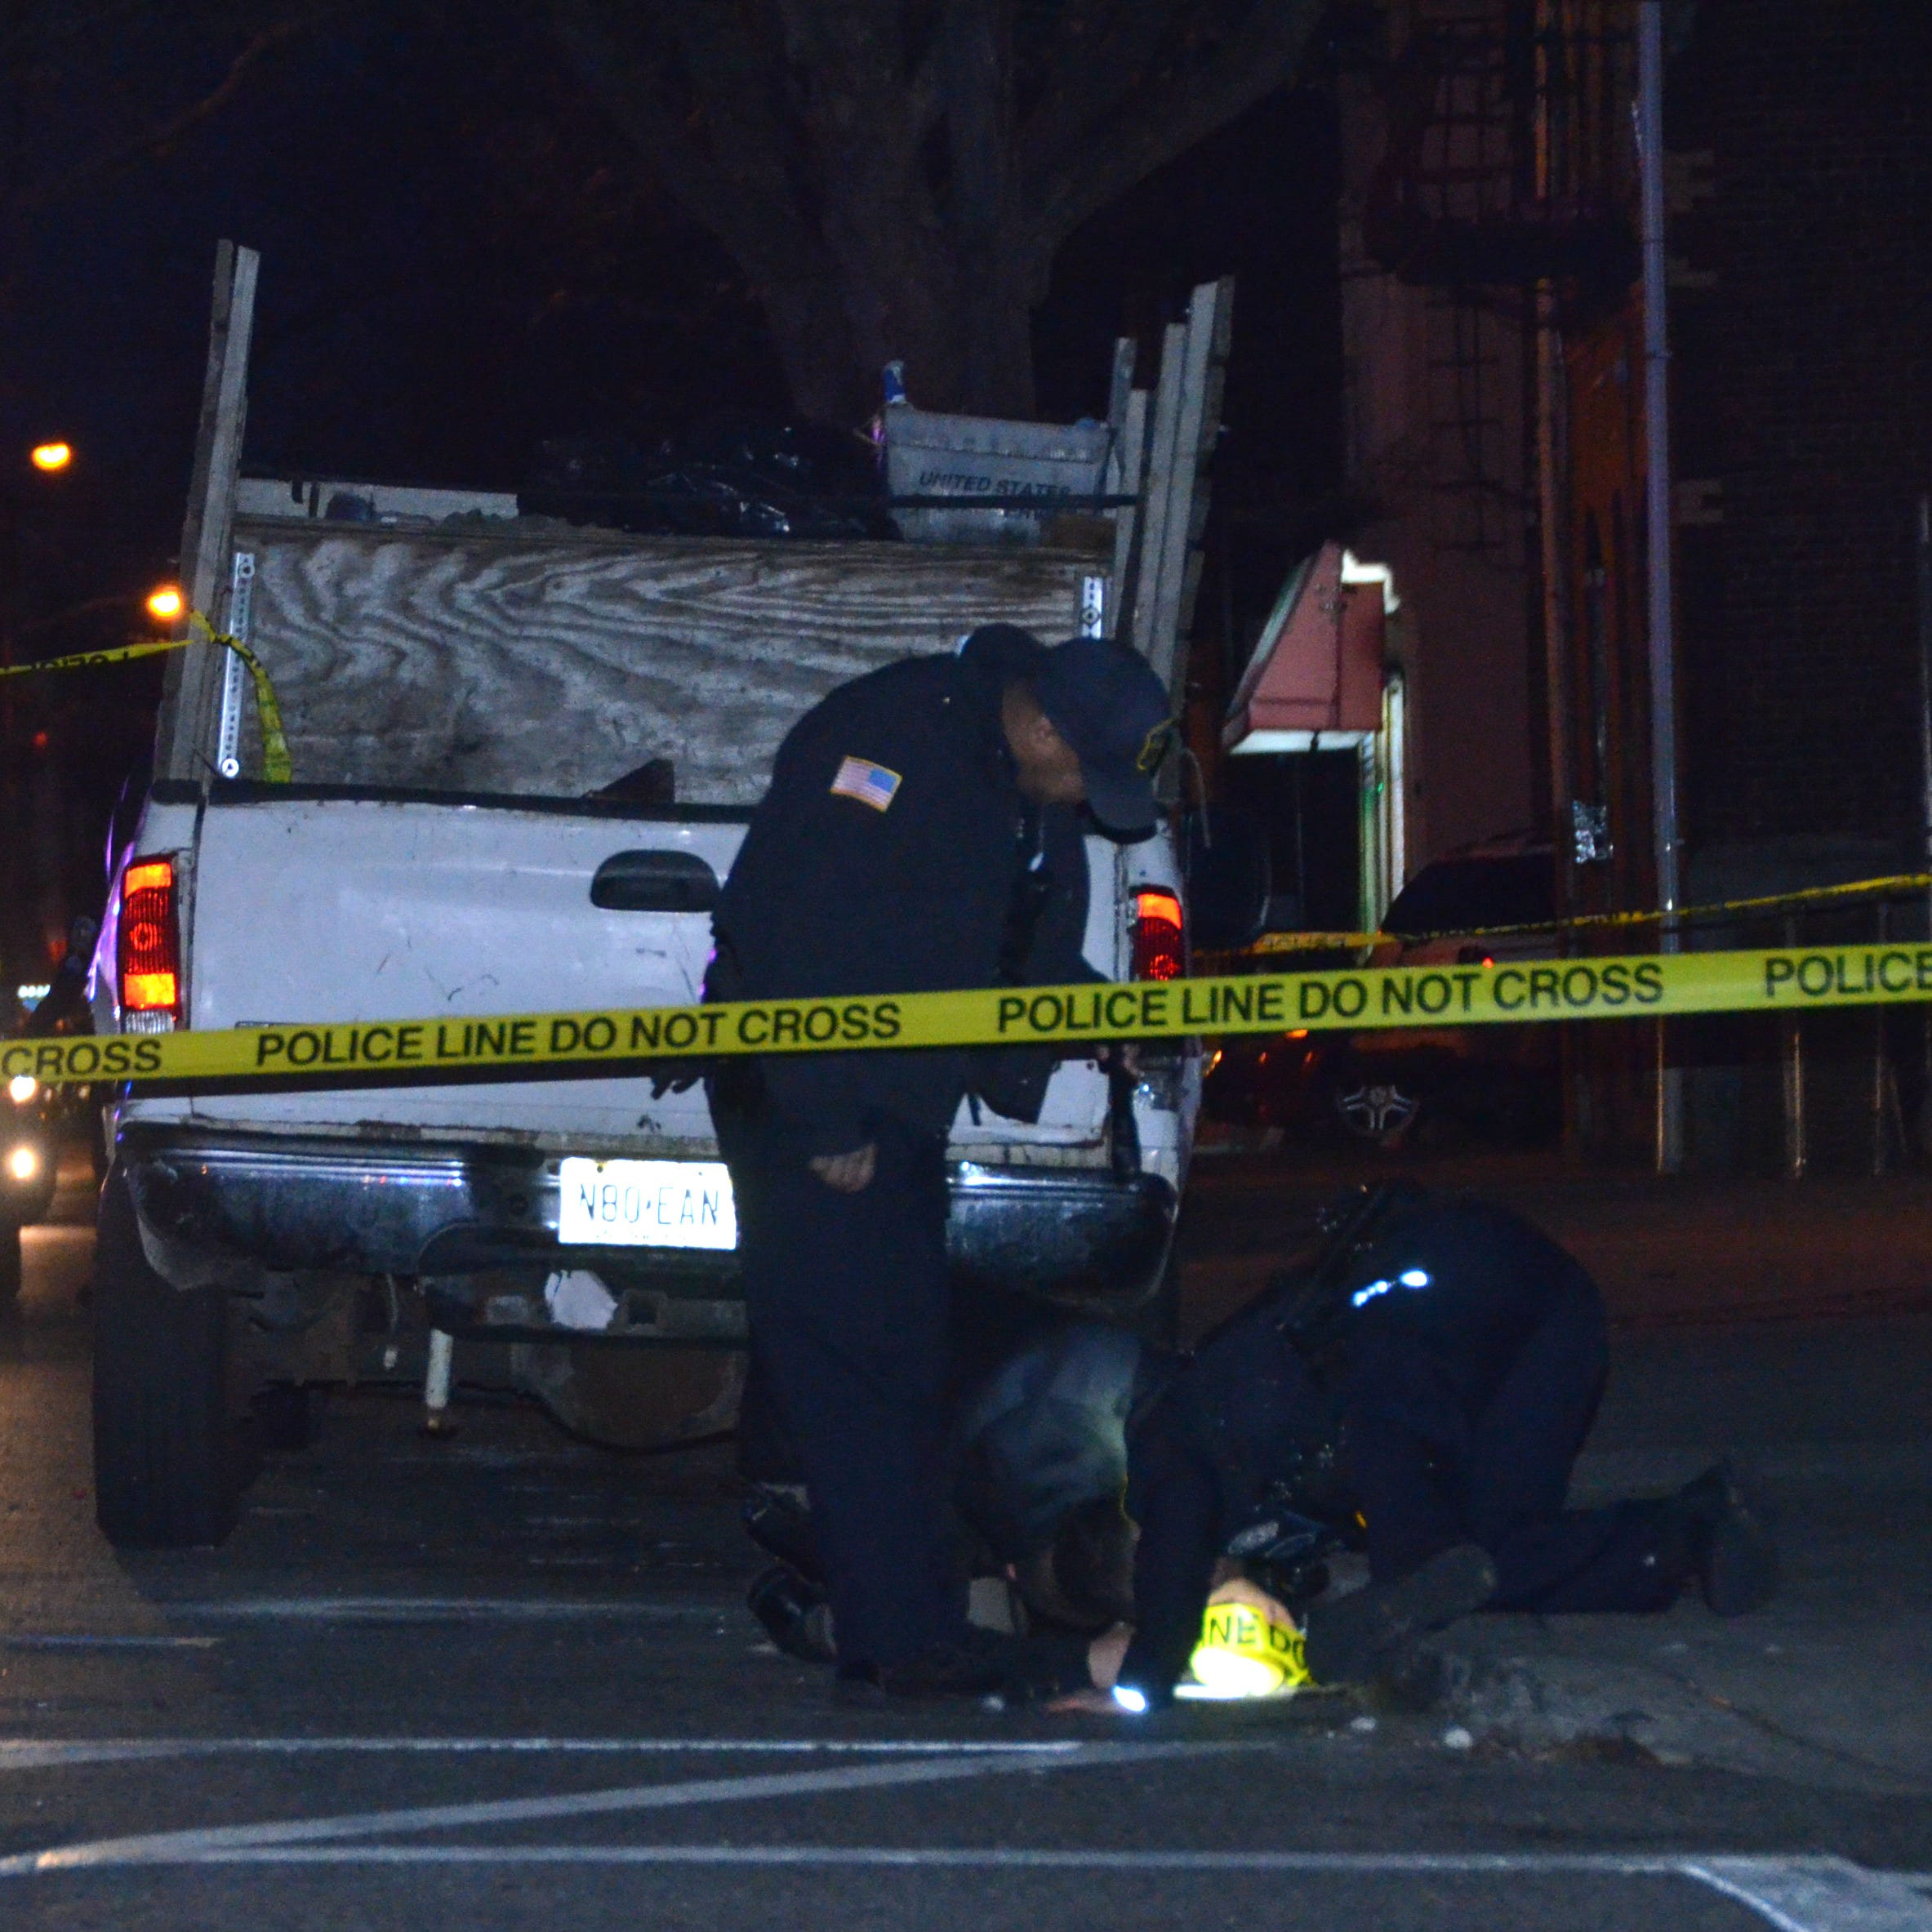 Shots fired in Passaic on New Year's Day